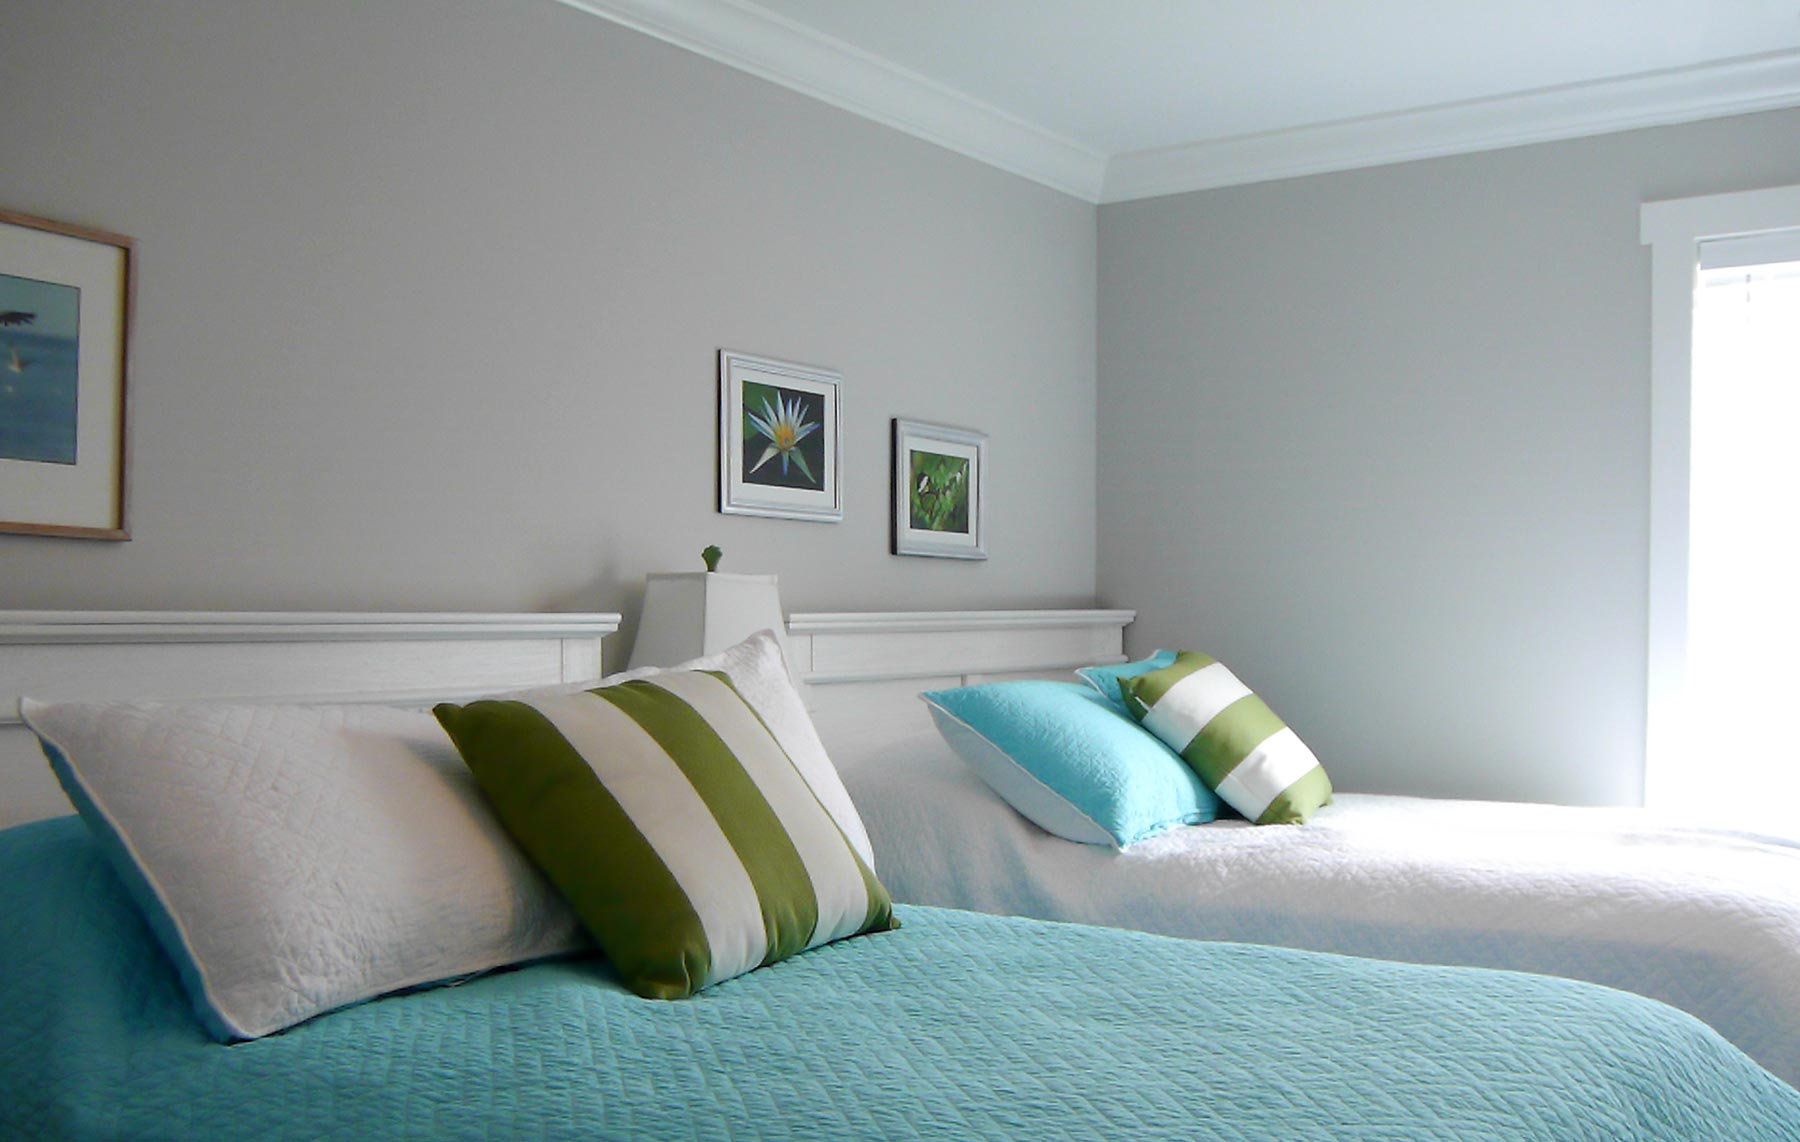 A guest room designed for two full size beds, great for rental homes as well as spill-over guest in any beach home.